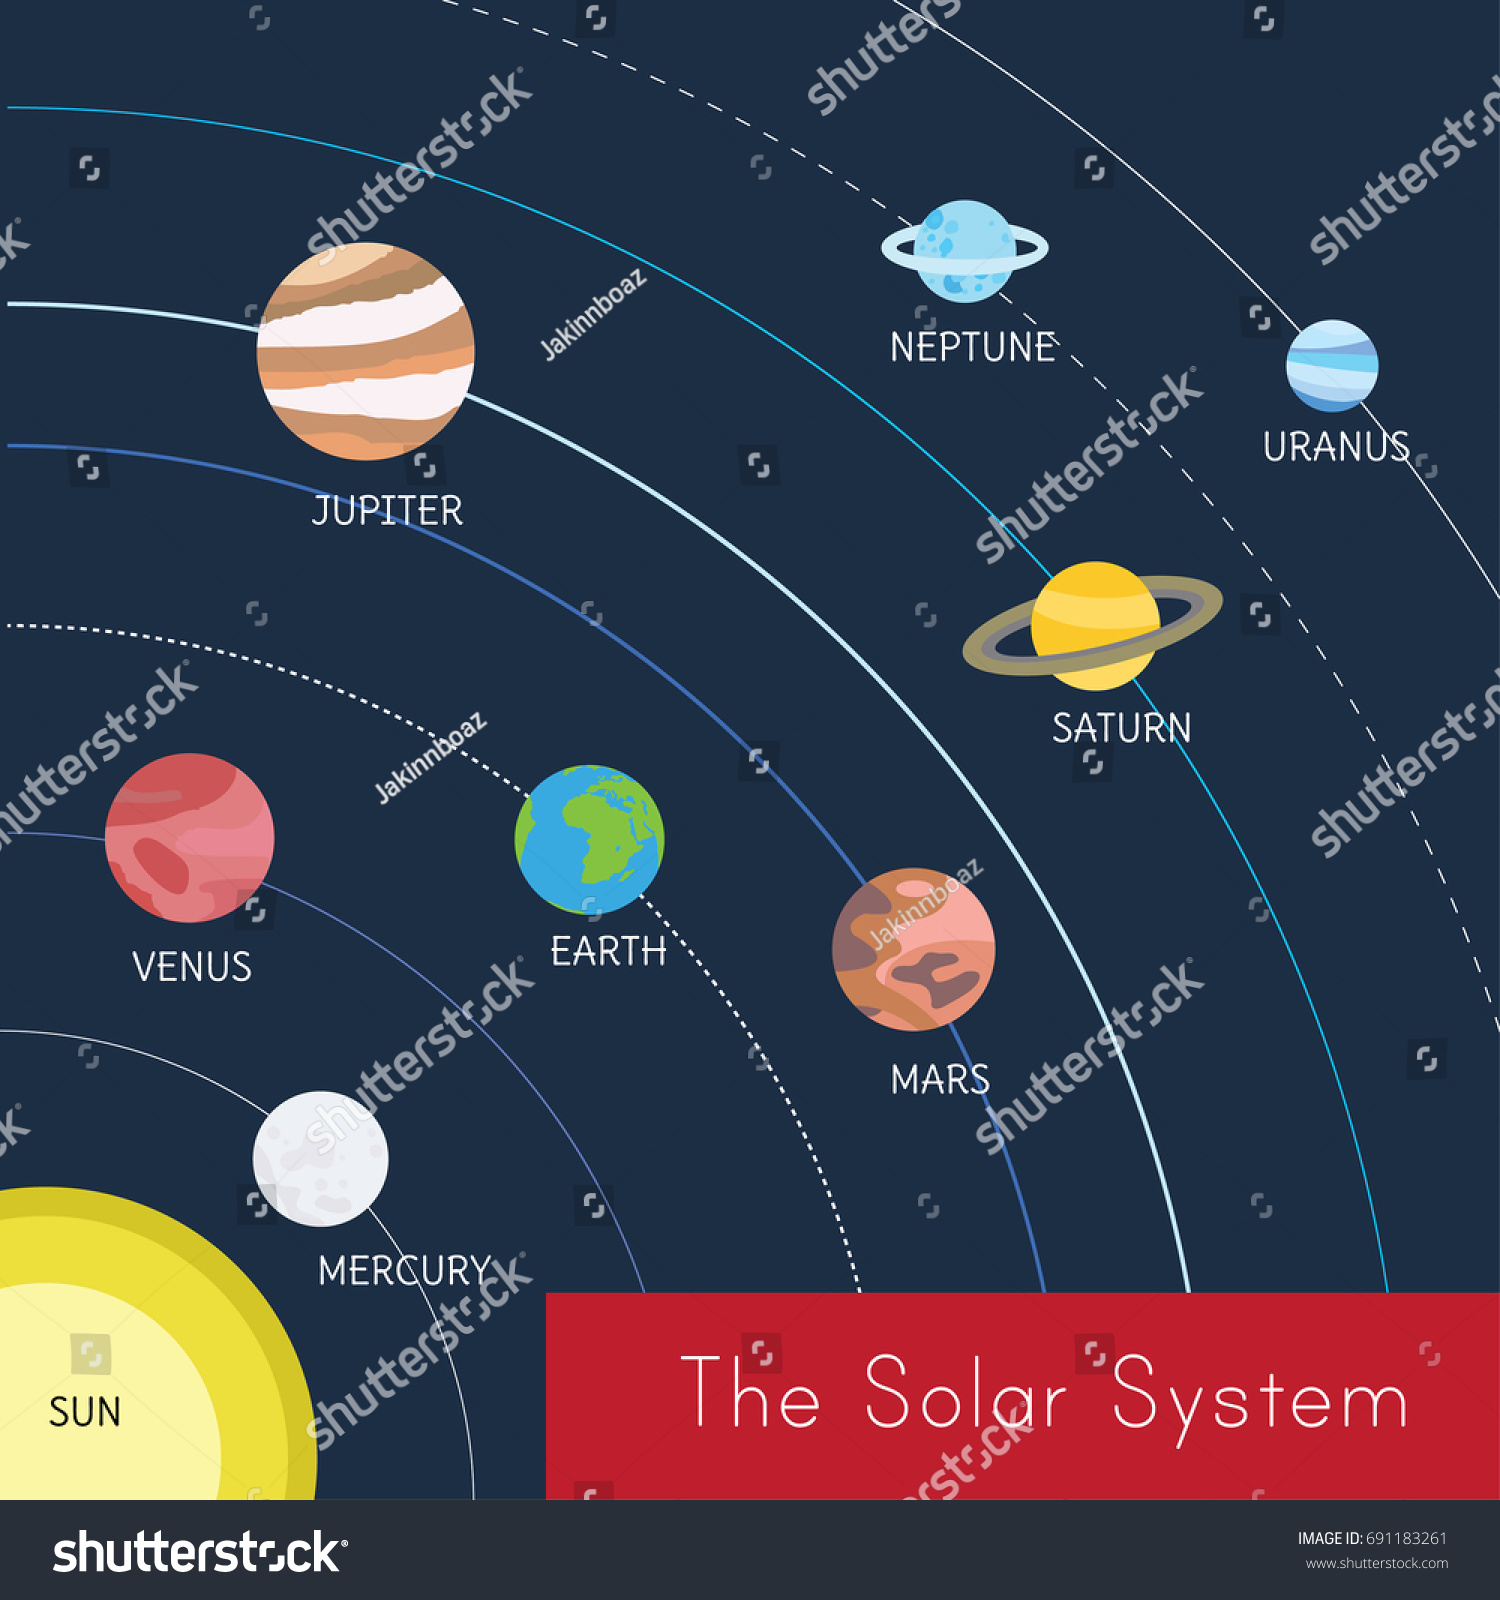 hight resolution of a diagram of the solar system from the sun to uranus it shows a quarter